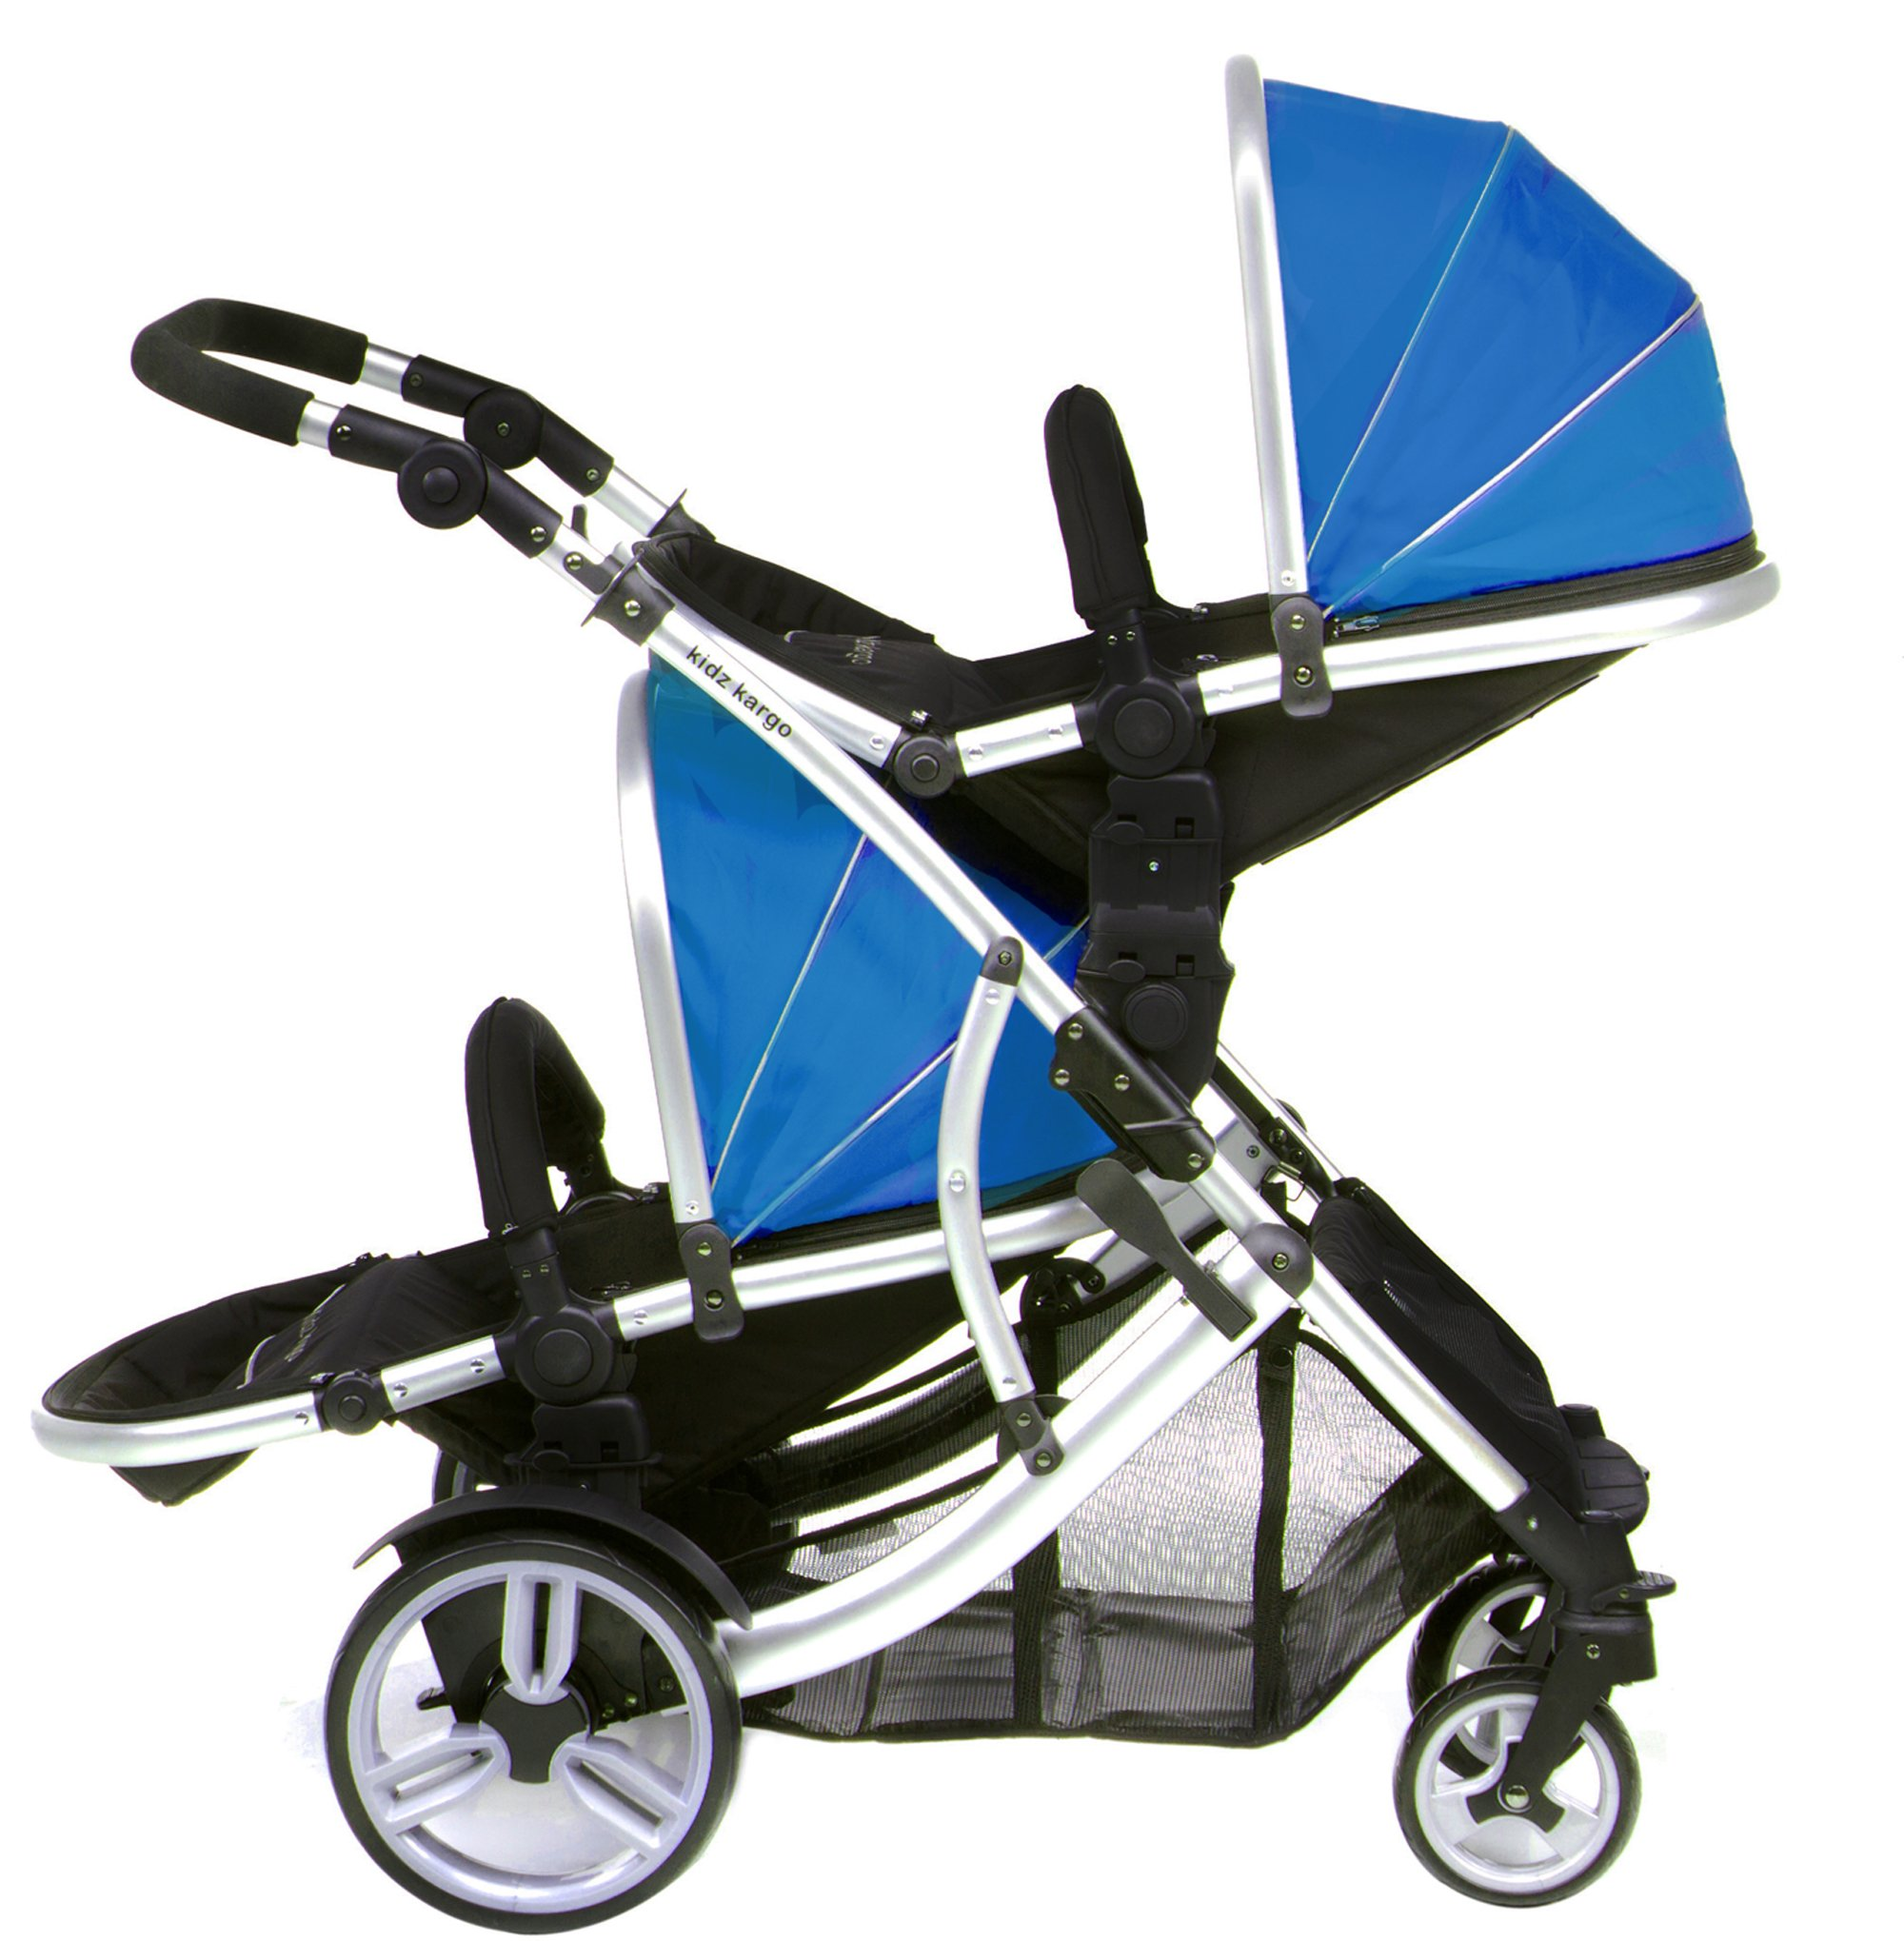 DUELLETTE 21 BS Twin Double Pushchair Tandem Stroller buggy 2 seat units, compatible with Kids Kargo safety Pod Car seat OR maxi cosi clips or Britax Baby safety Car seat. (sold separately) 2 Free Teal footmuffs 2 Free rain covers Black /Teal Silver chassis Ideal for Twins or Baby Toddler by Kids Kargo Kids Kargo Demo video please see link http://youtu.be/Ngj0yD3TMSM Various seat positions. Both seats can face mum (ideal for twins) Suitability Twins (Newborn Twins if used with car seats). Accommodates 1 or 2 car seats 3